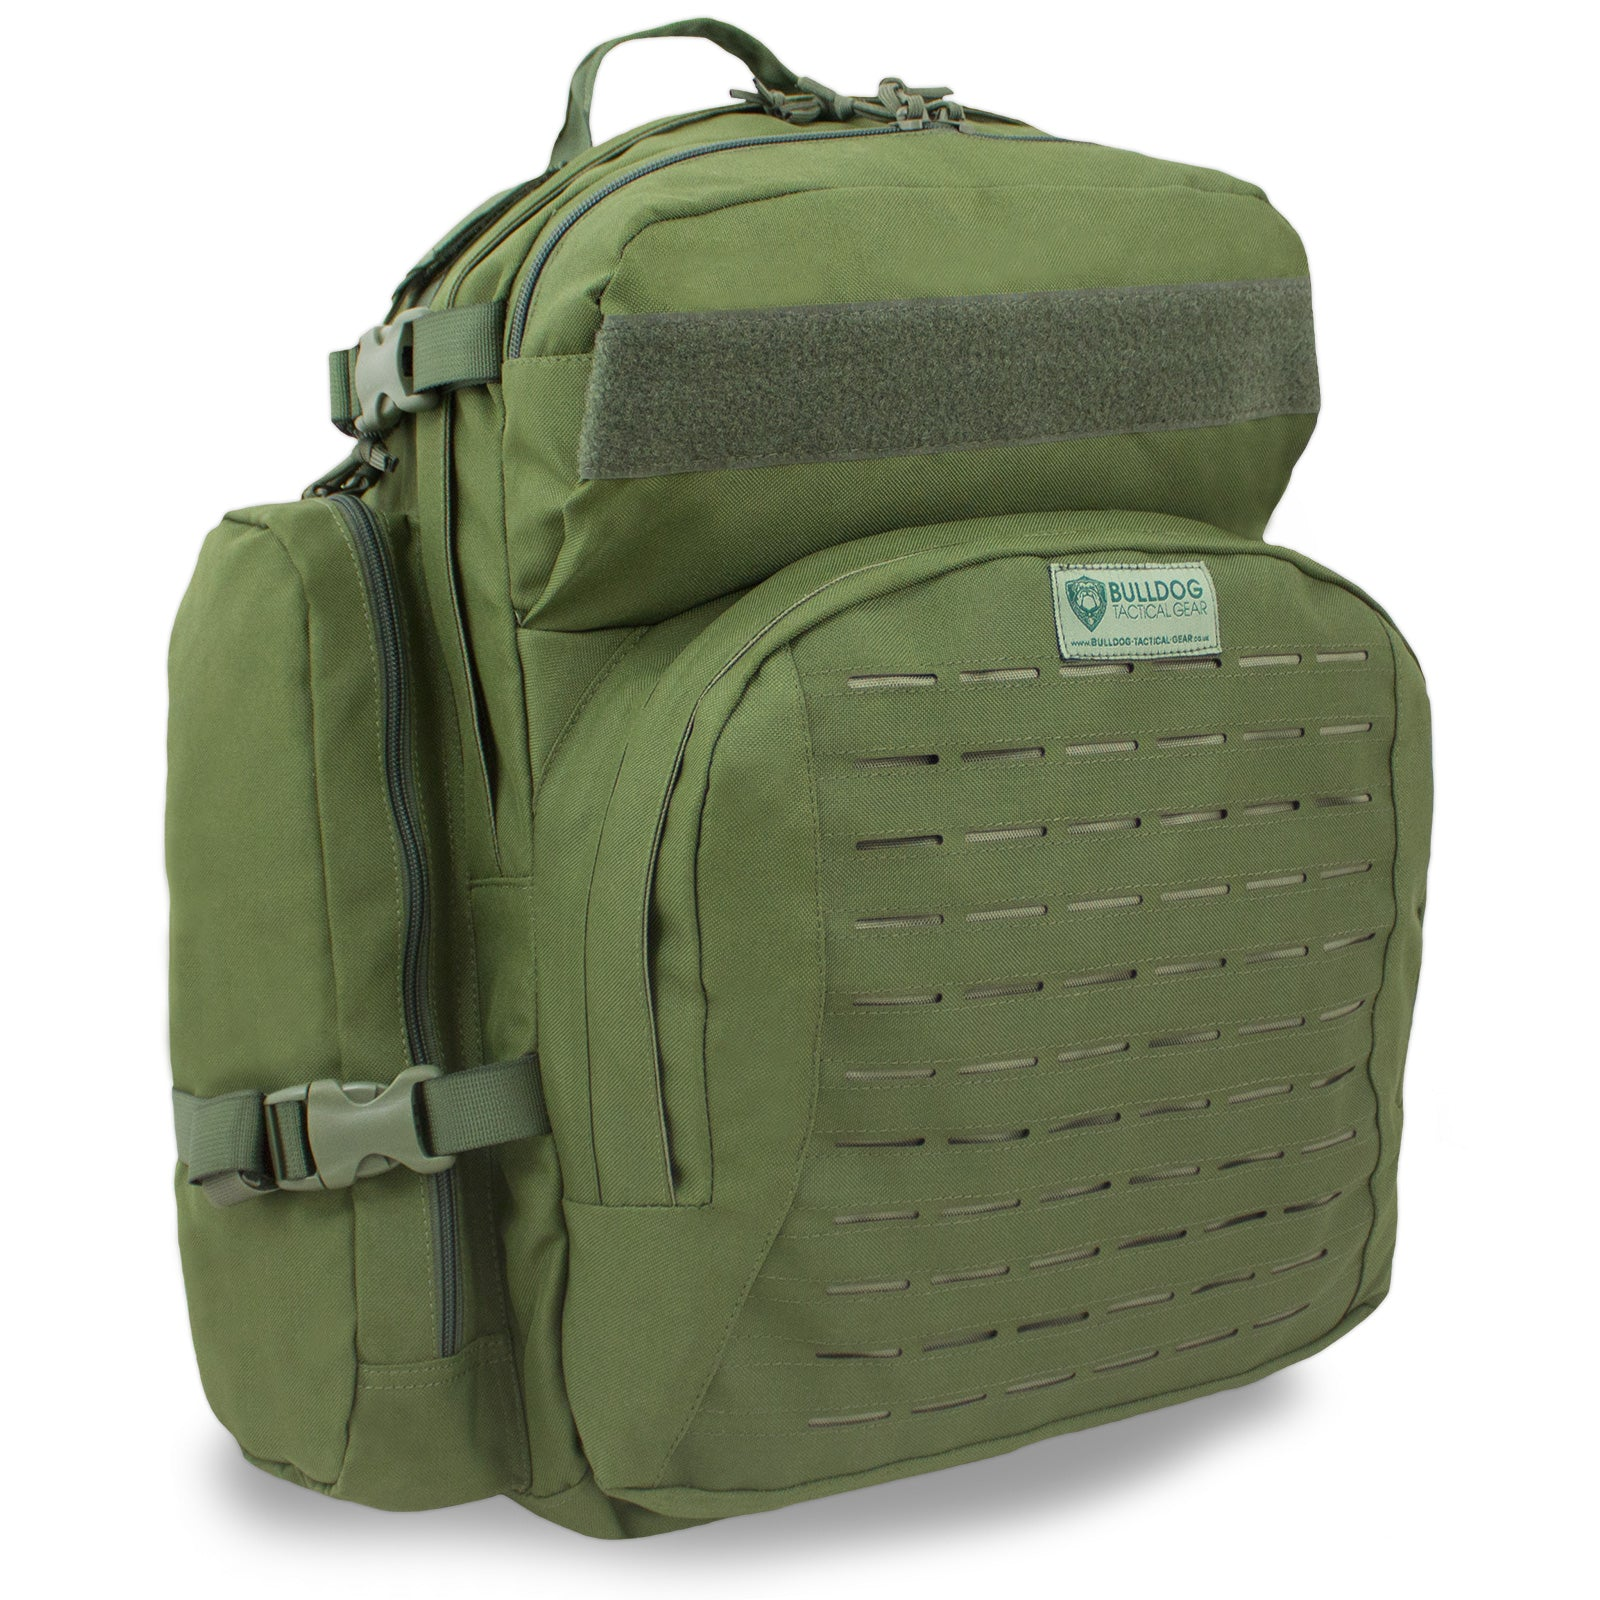 Tacticus Rucksack 35L - Bulldog Tactical Gear